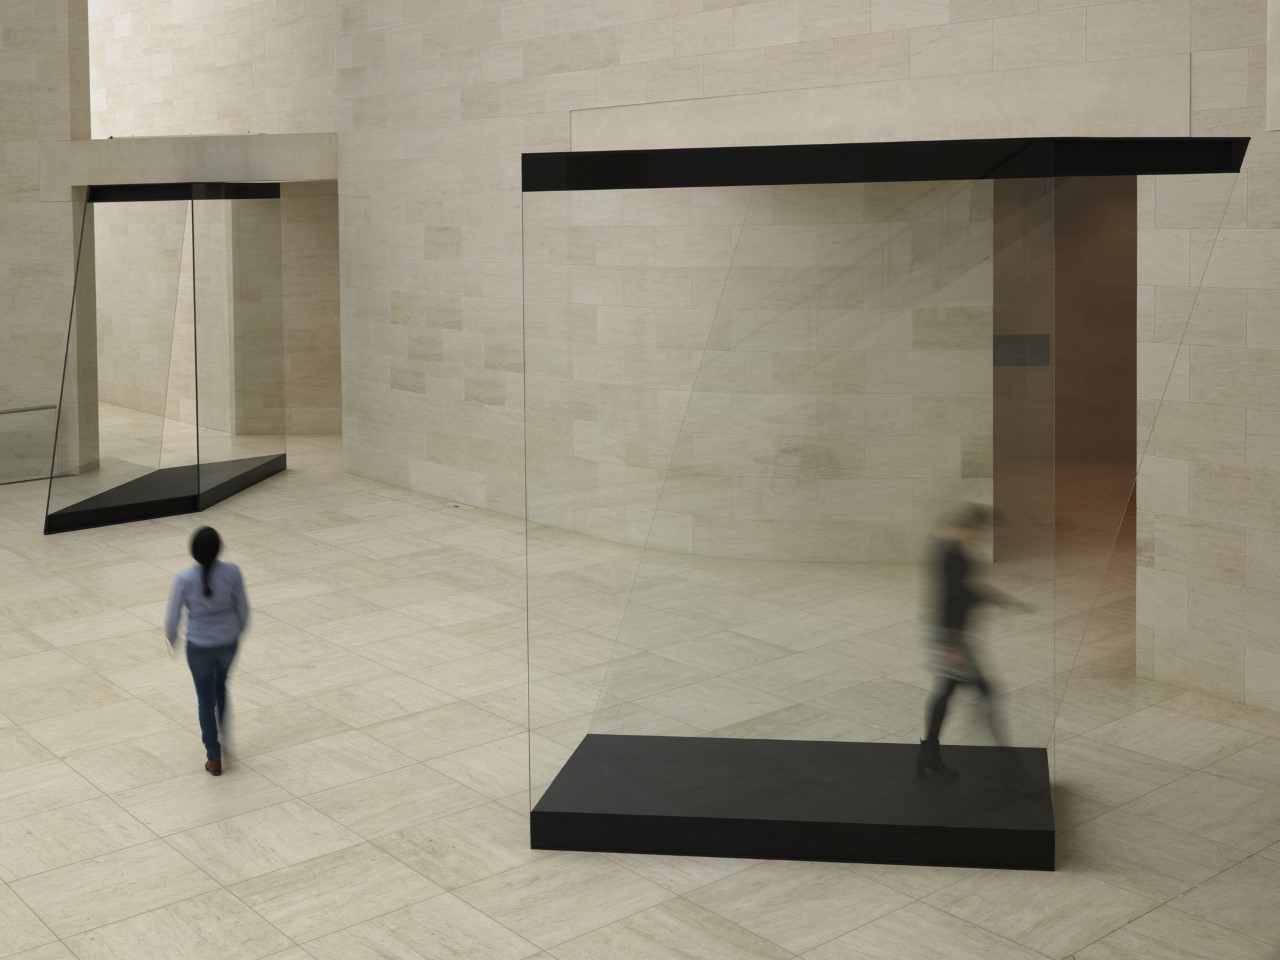 Two glass and wood structures in the atrium of a museum. A person can be seen walking through one and another person is walking towards another. Both figures are slightly blurred showing movement.